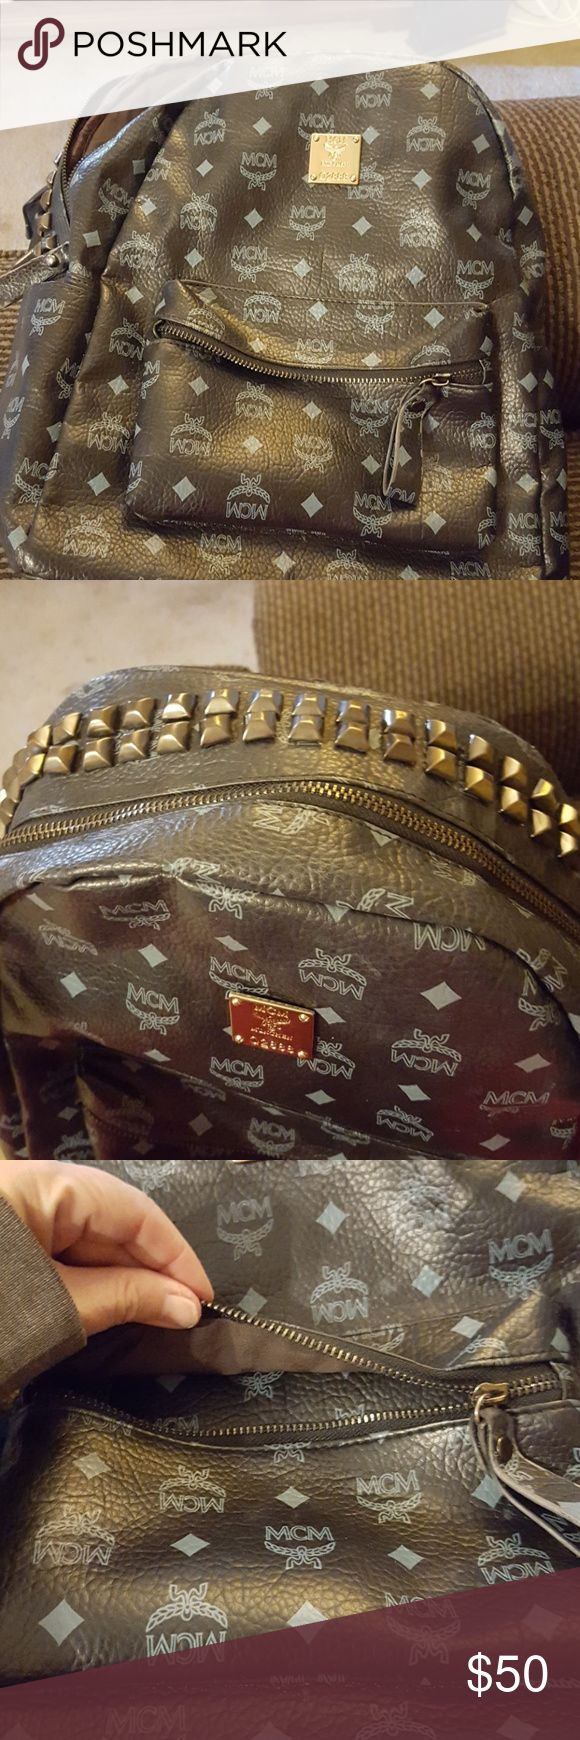 MCM Backpack Straps r torn. Beautiful backpack and classy with studs. Frugal price because of straps. MCM Bags Backpacks